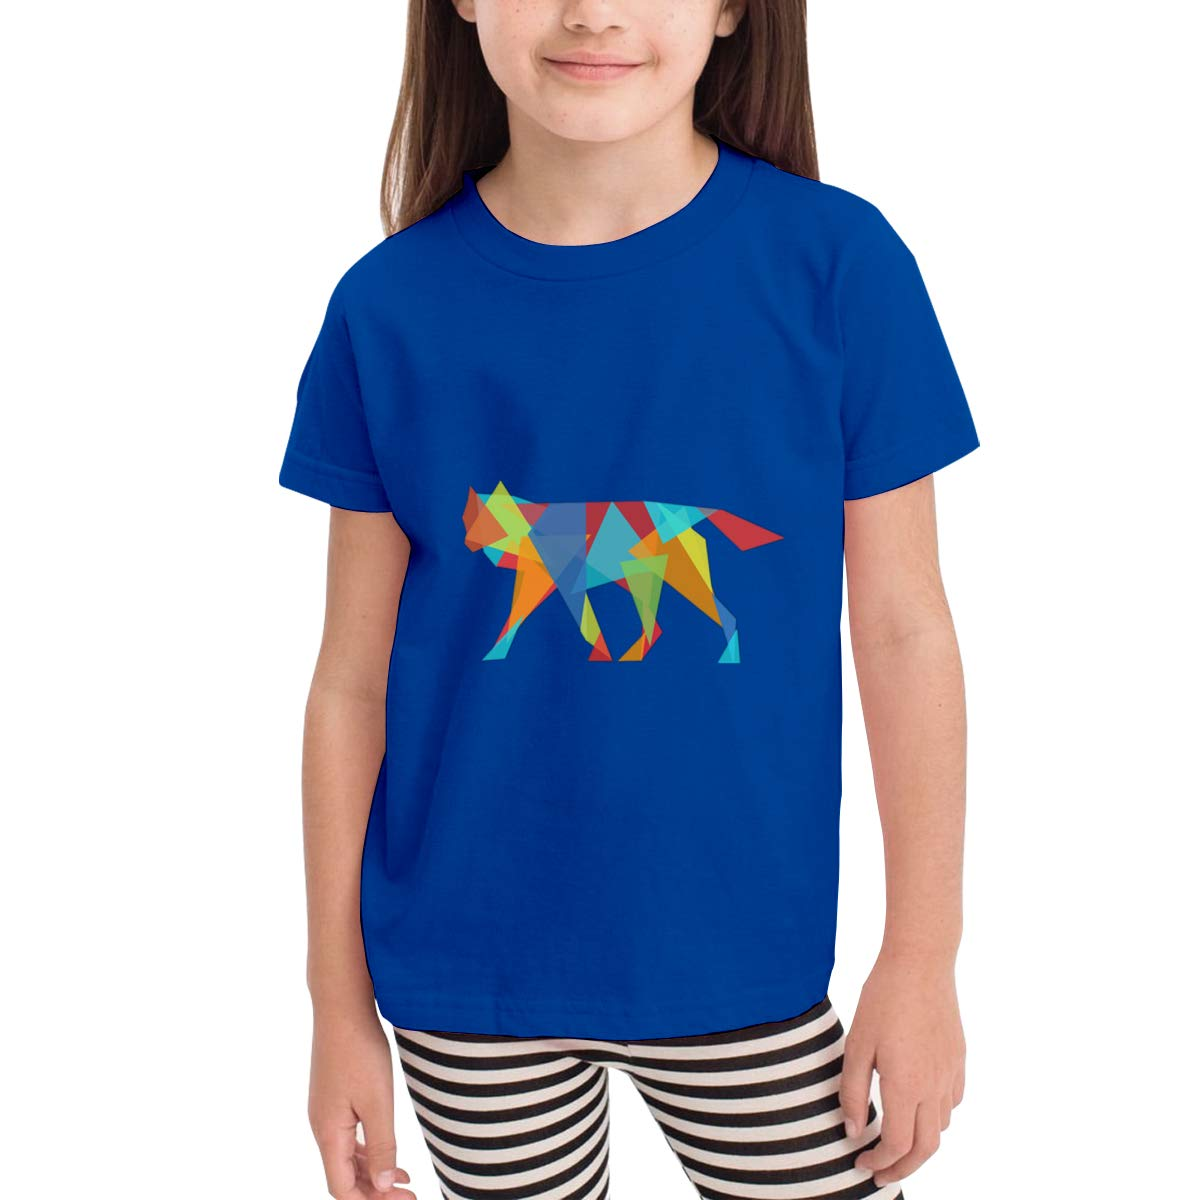 Colorful Geometry Wolf 100/% Cotton Toddler Baby Boys Girls Kids Short Sleeve T Shirt Top Tee Clothes 2-6 T